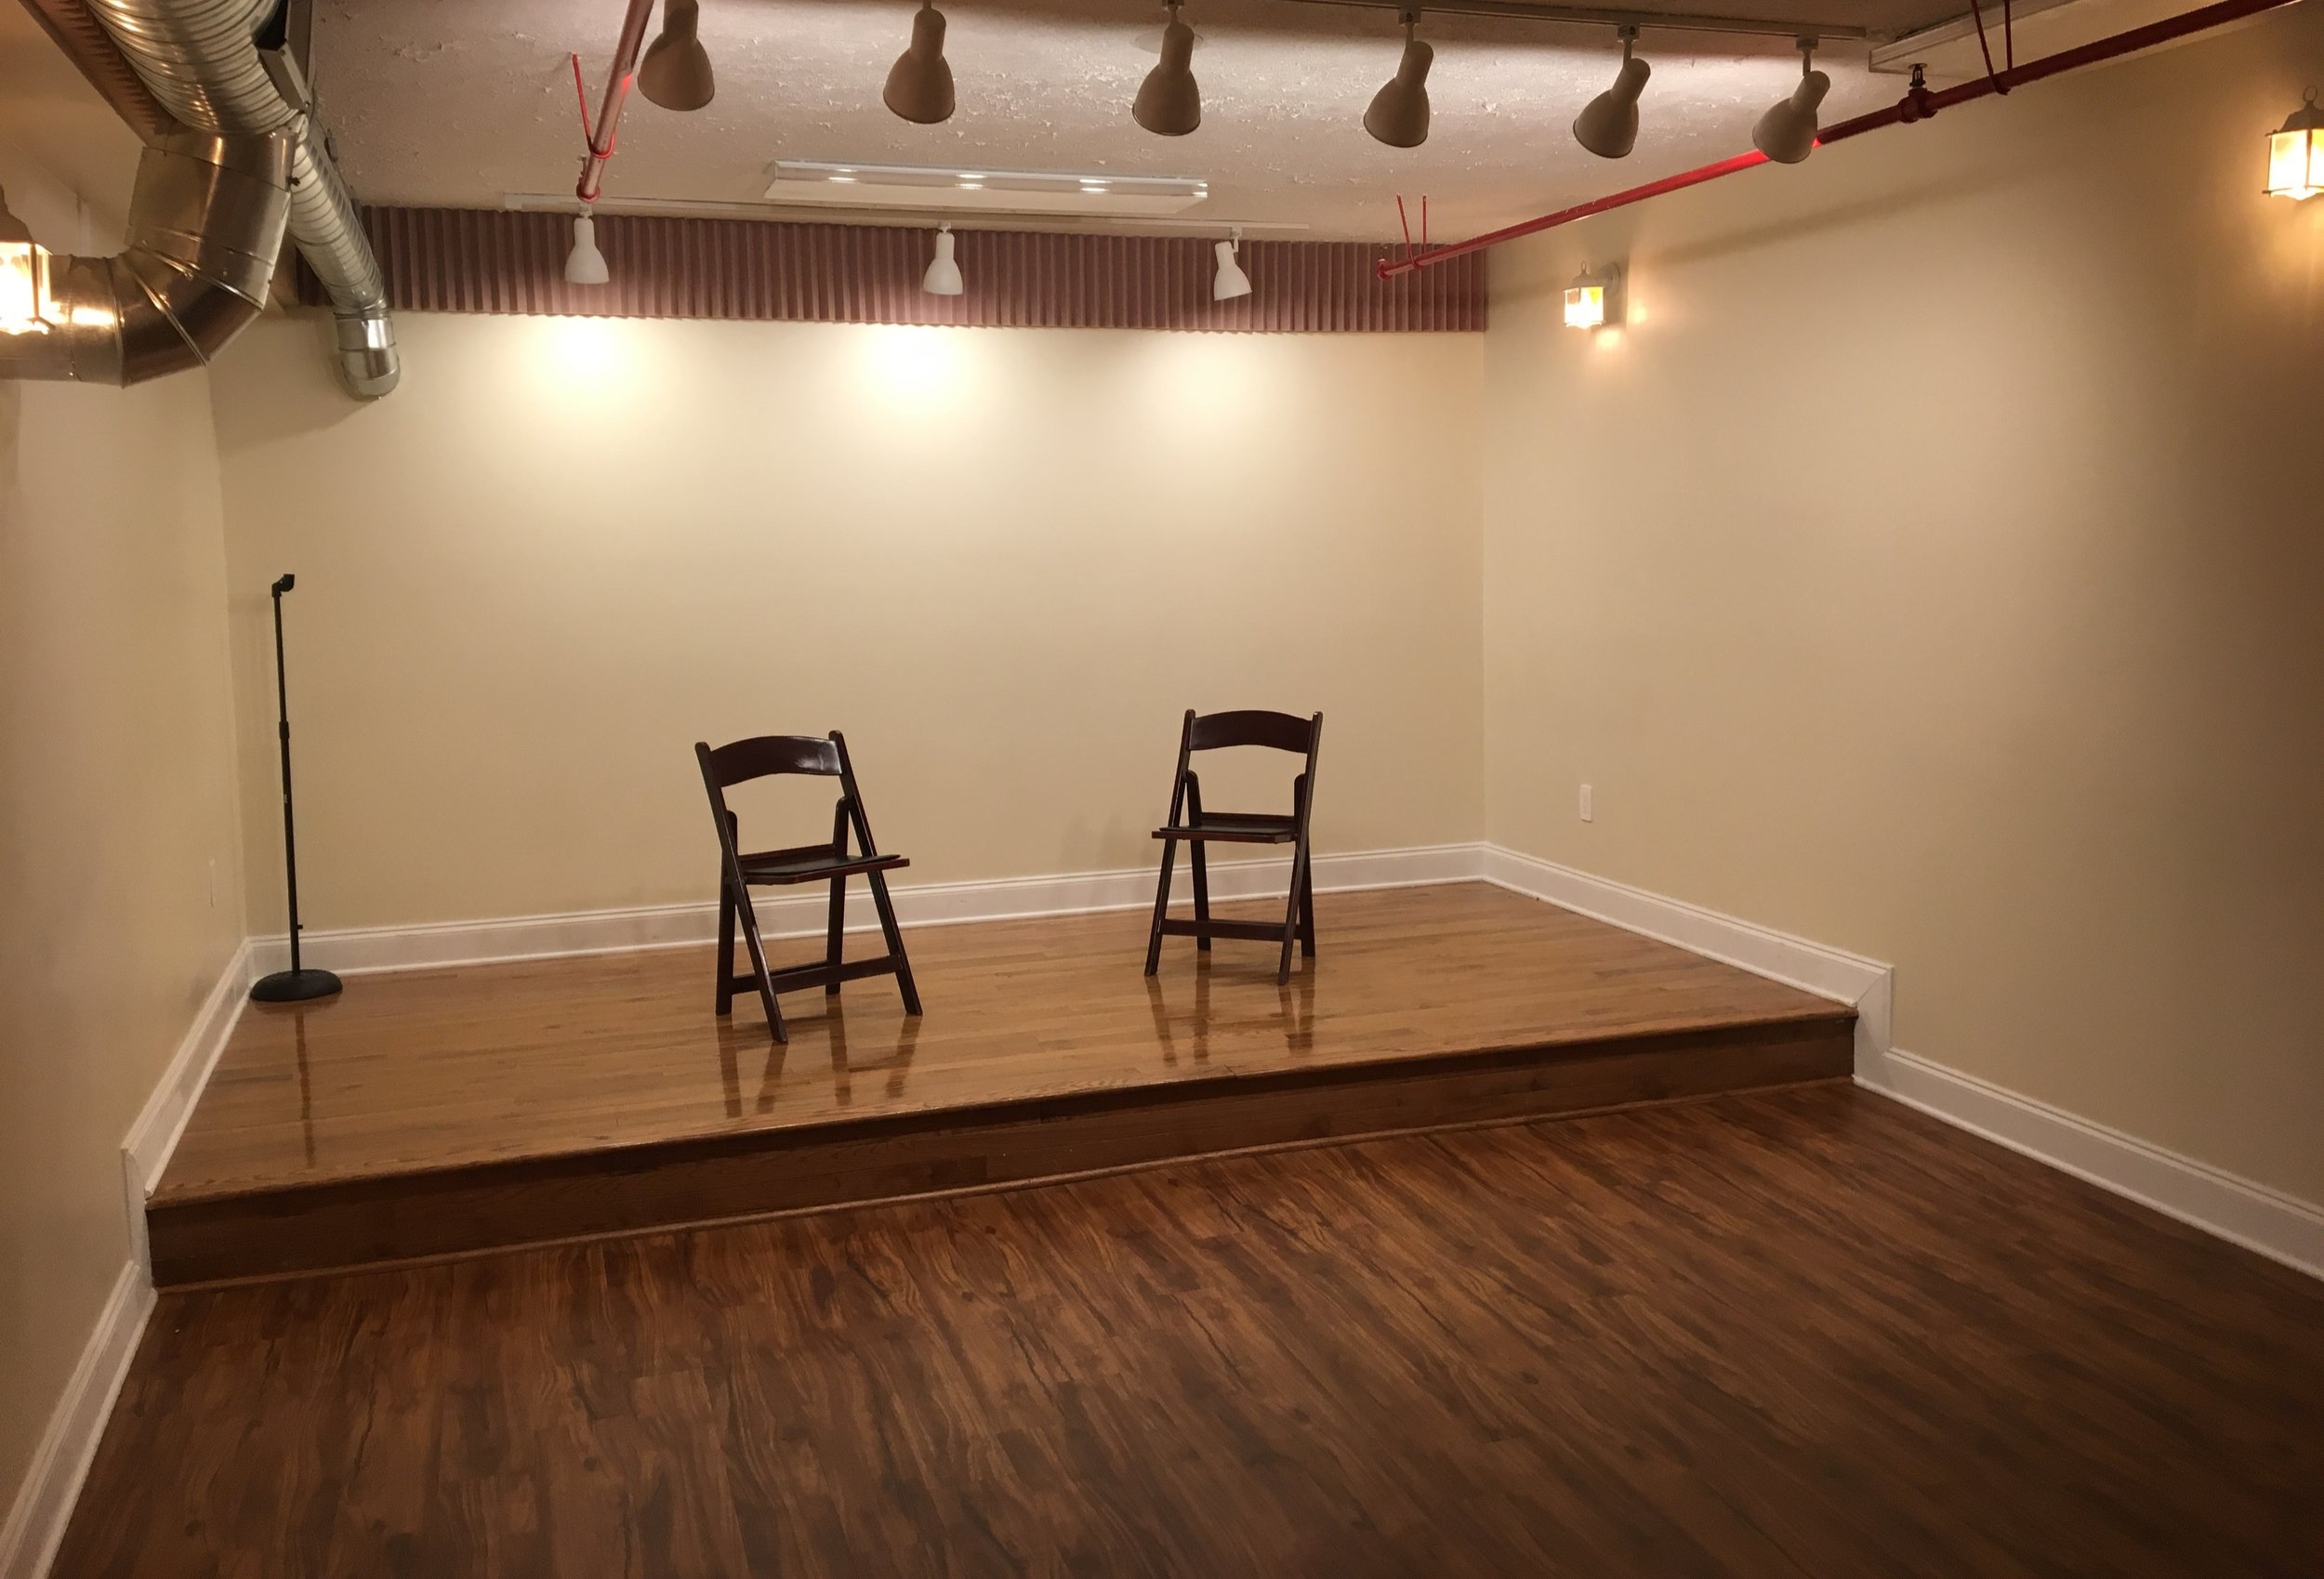 Classrooms are great for improv teams to practice, small office parties, dancers and many more!